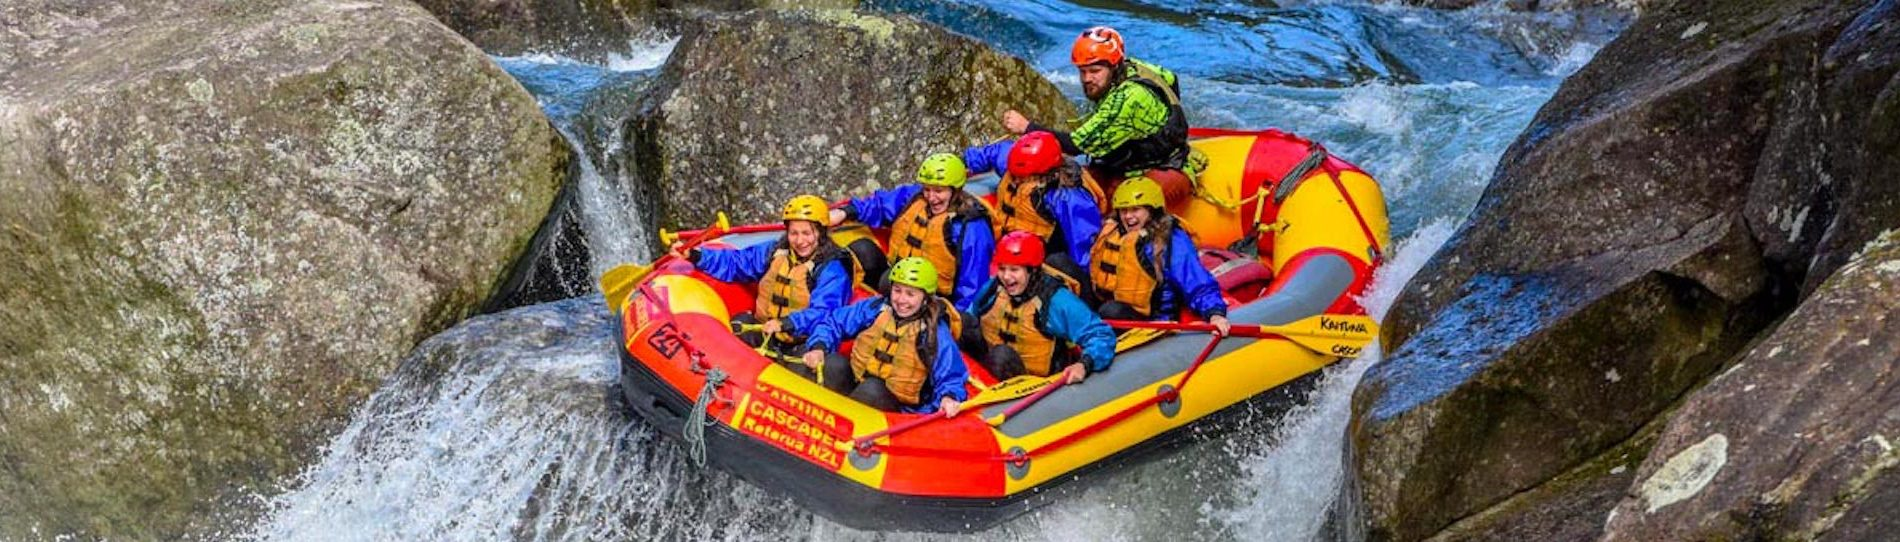 taupo white water rafting